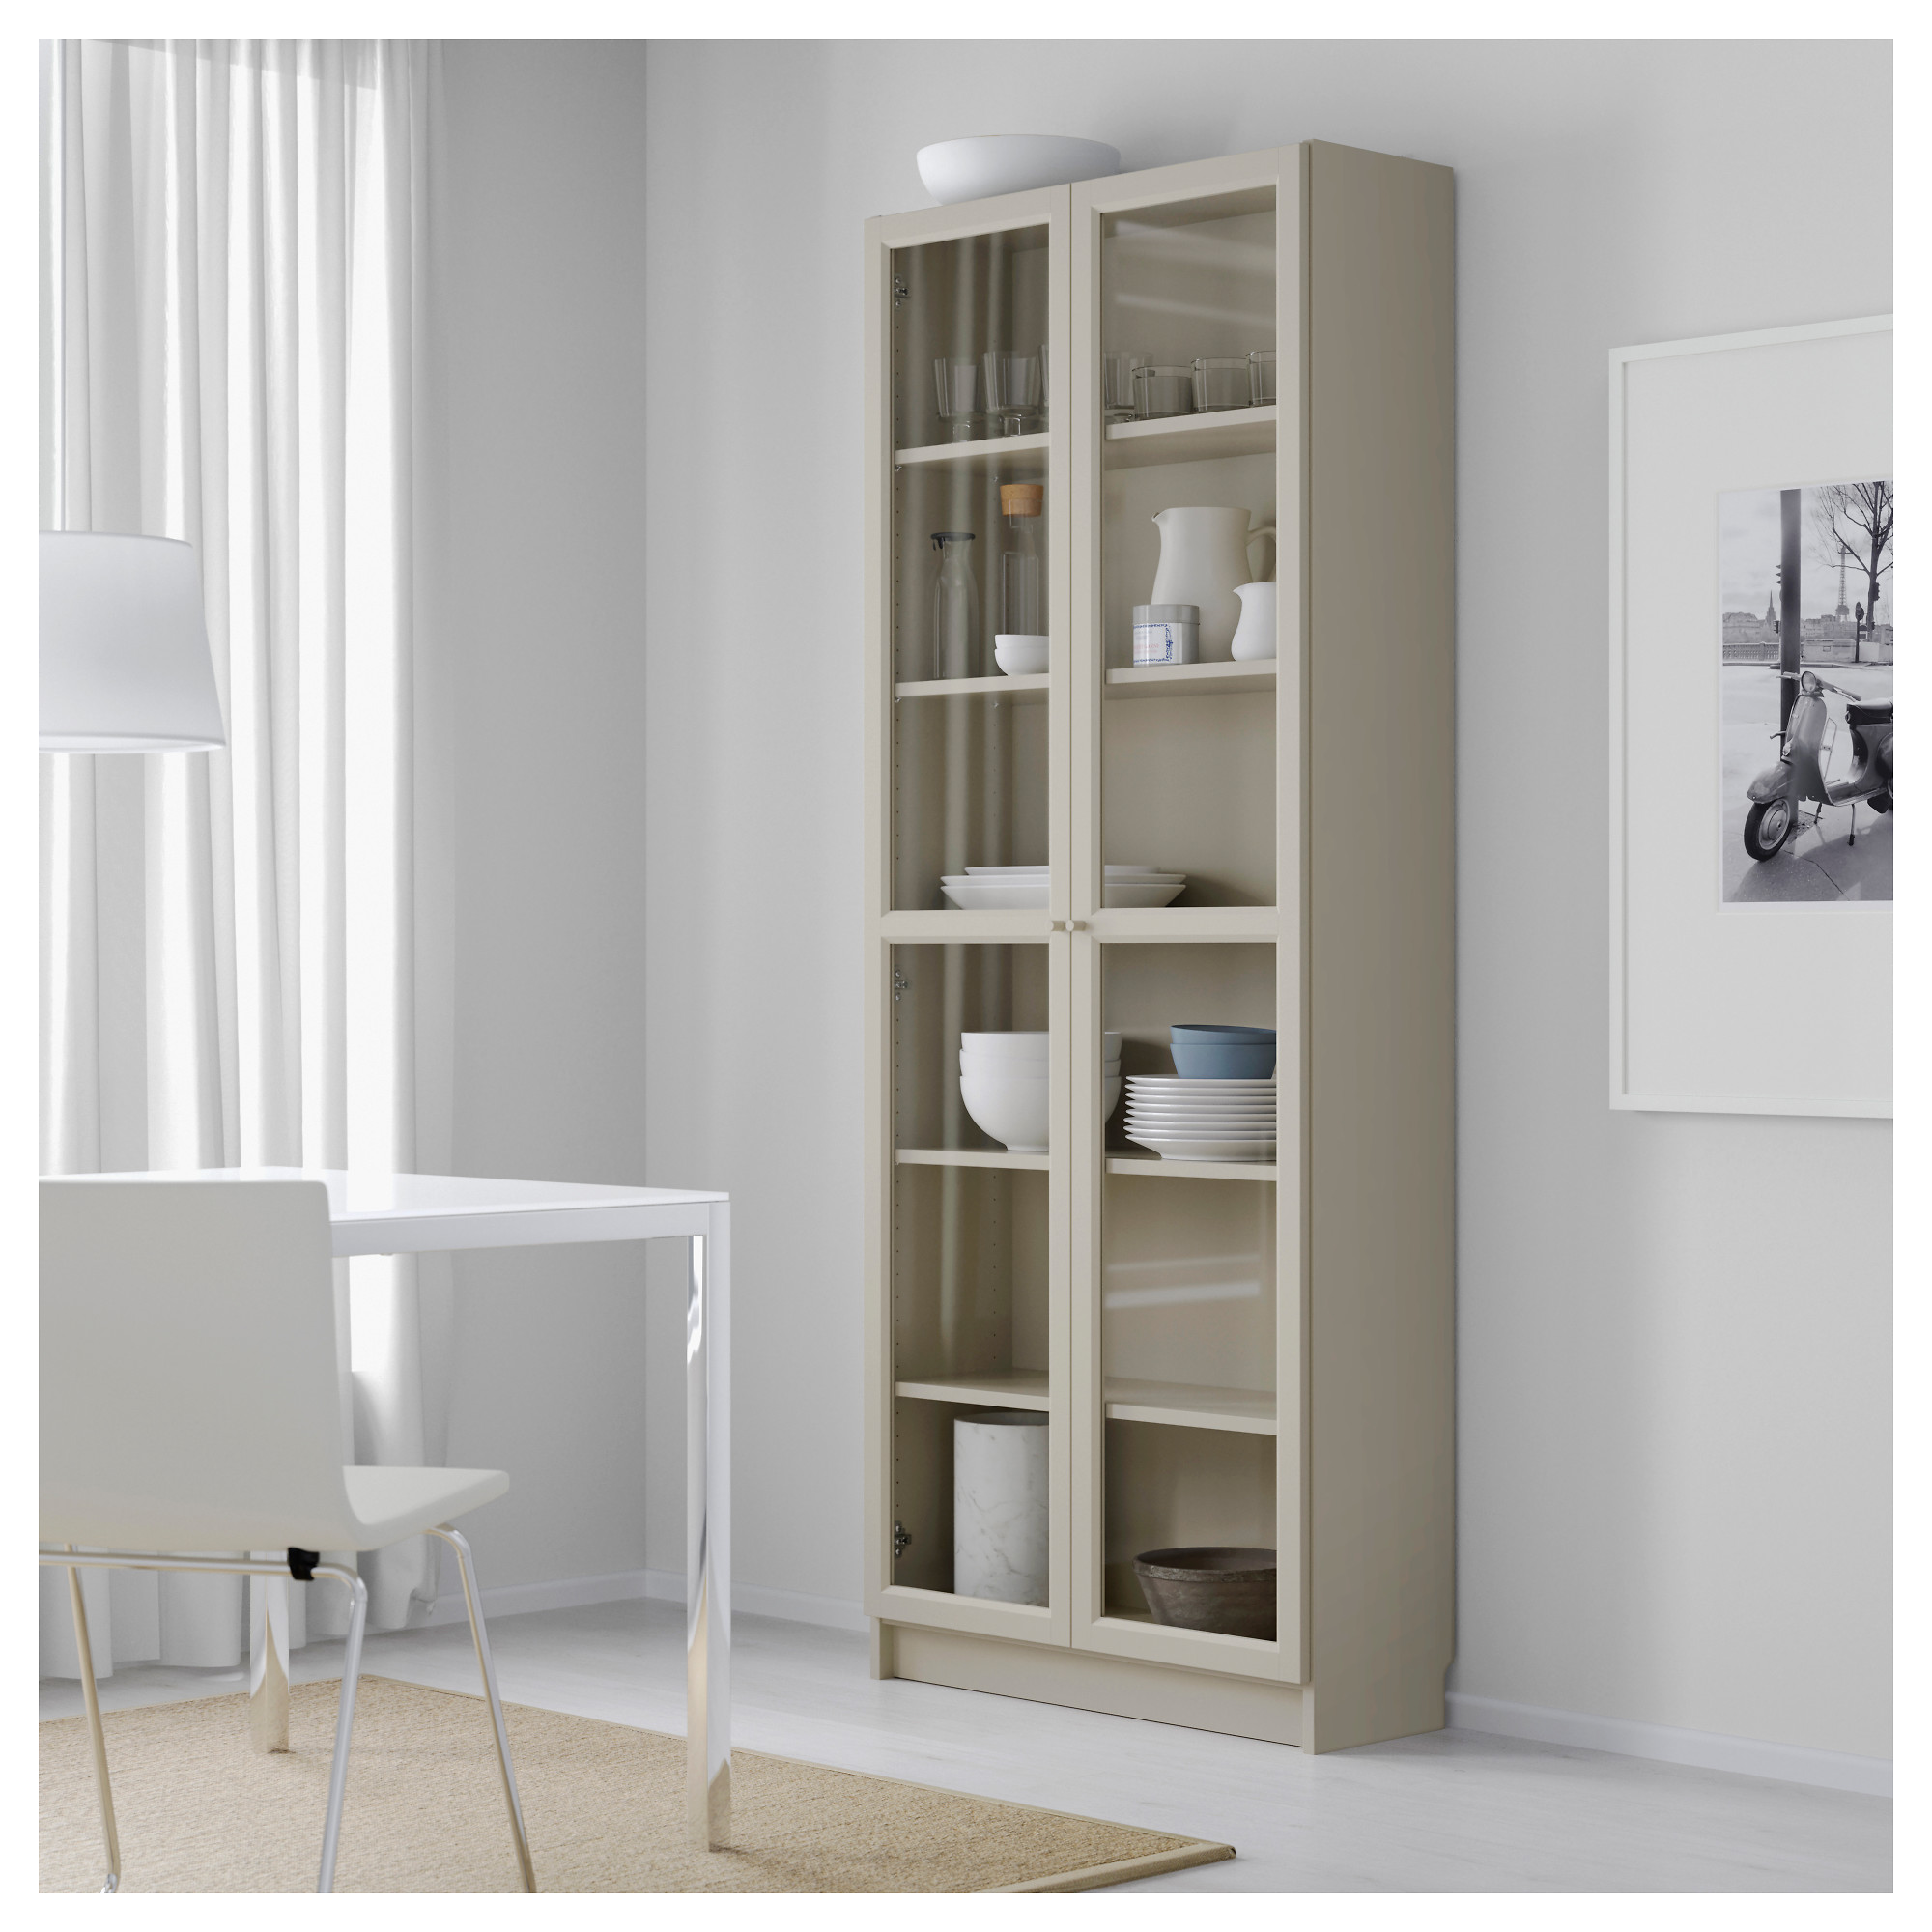 design with bookcase image ideas colour bookshelf large the of story choosing glass doors